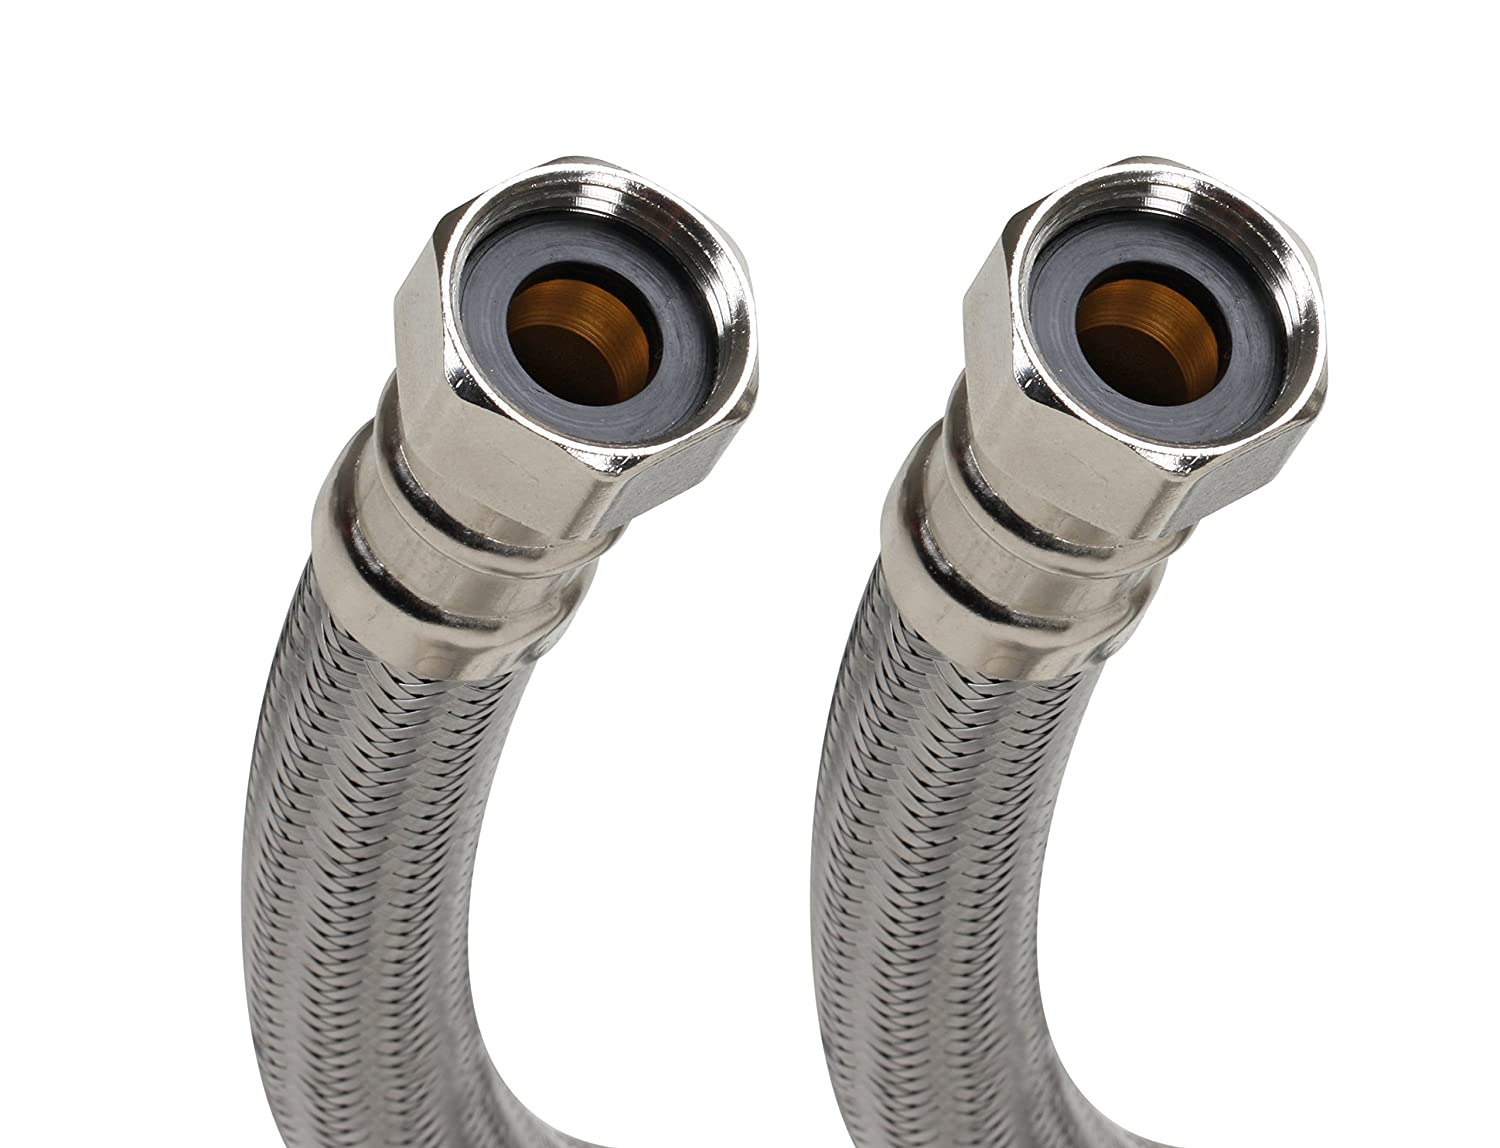 Fluidmaster B1H12 Water Heater Connector, Braided Stainless Steel - 3/4 F.I.P. Thread x 3/4 F.I.P. Thread, 12-Inch Length